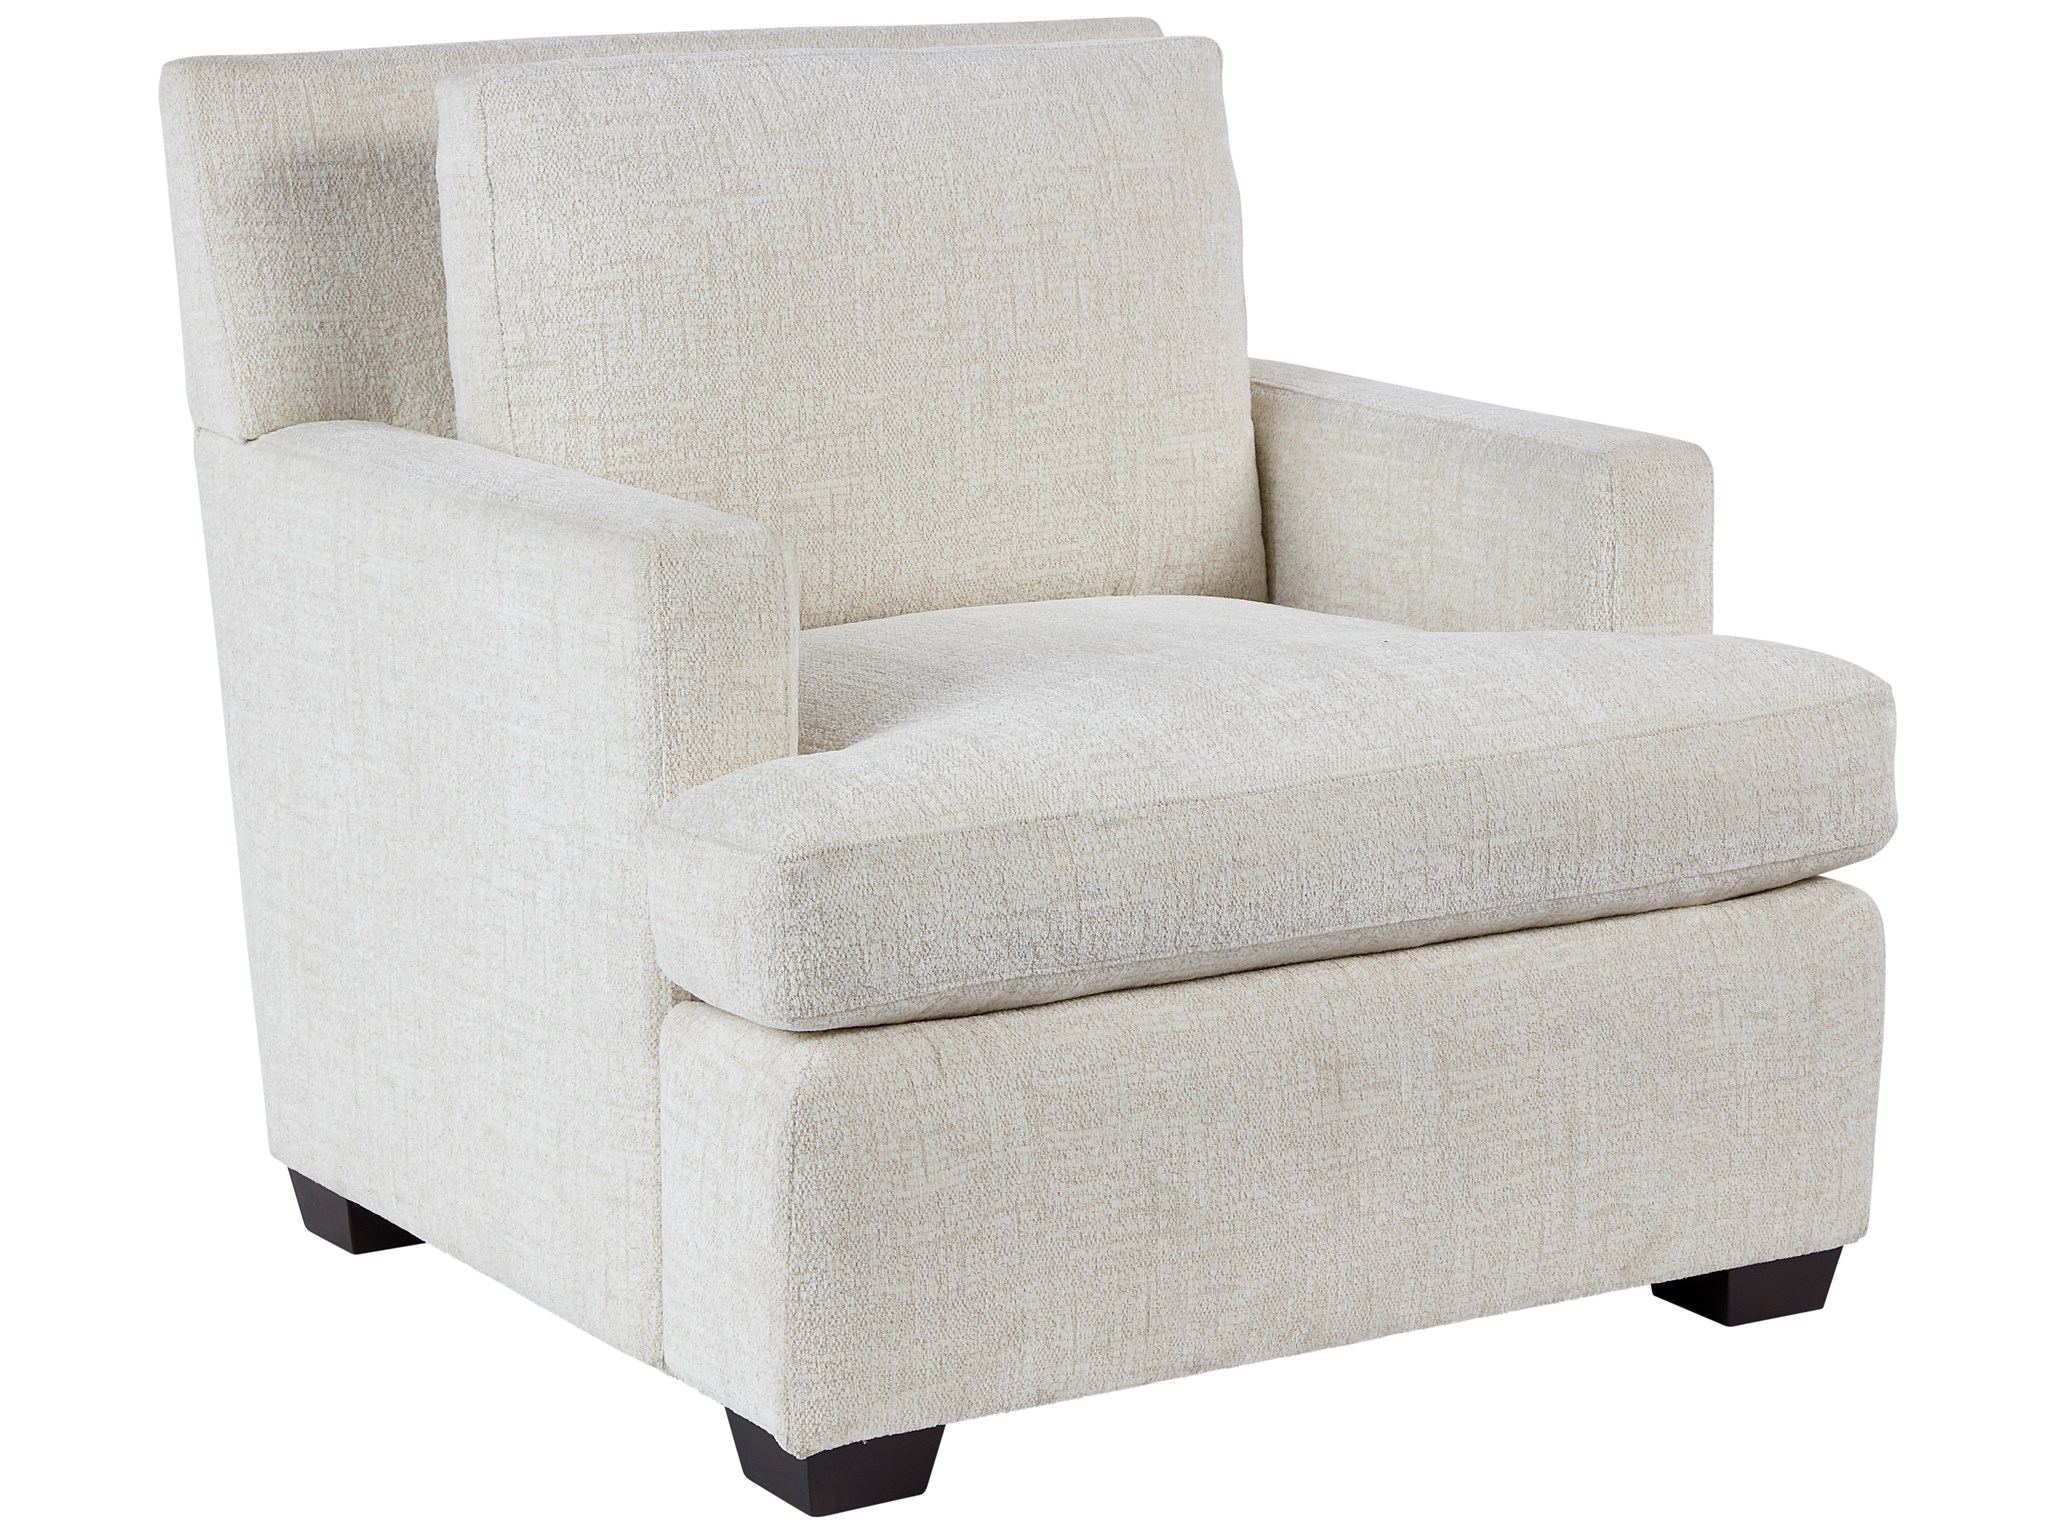 Emmerson Chair - Special Order